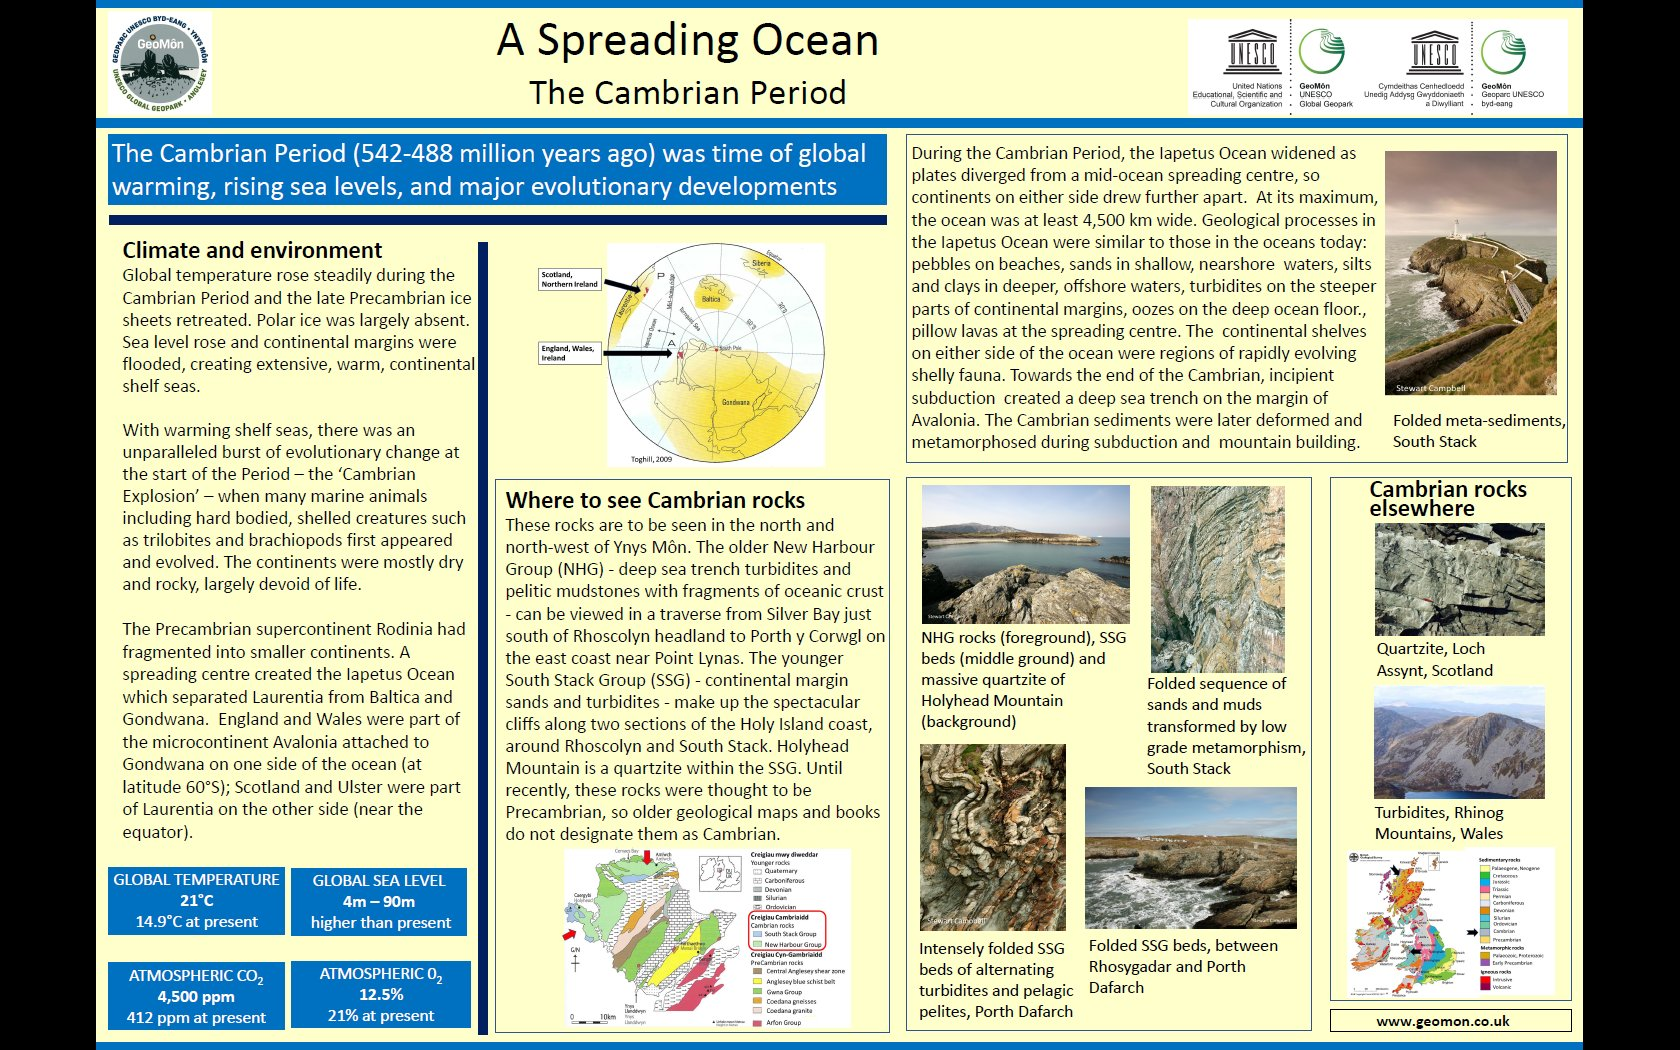 Poster showing geological conditions and climate in Cambrian times